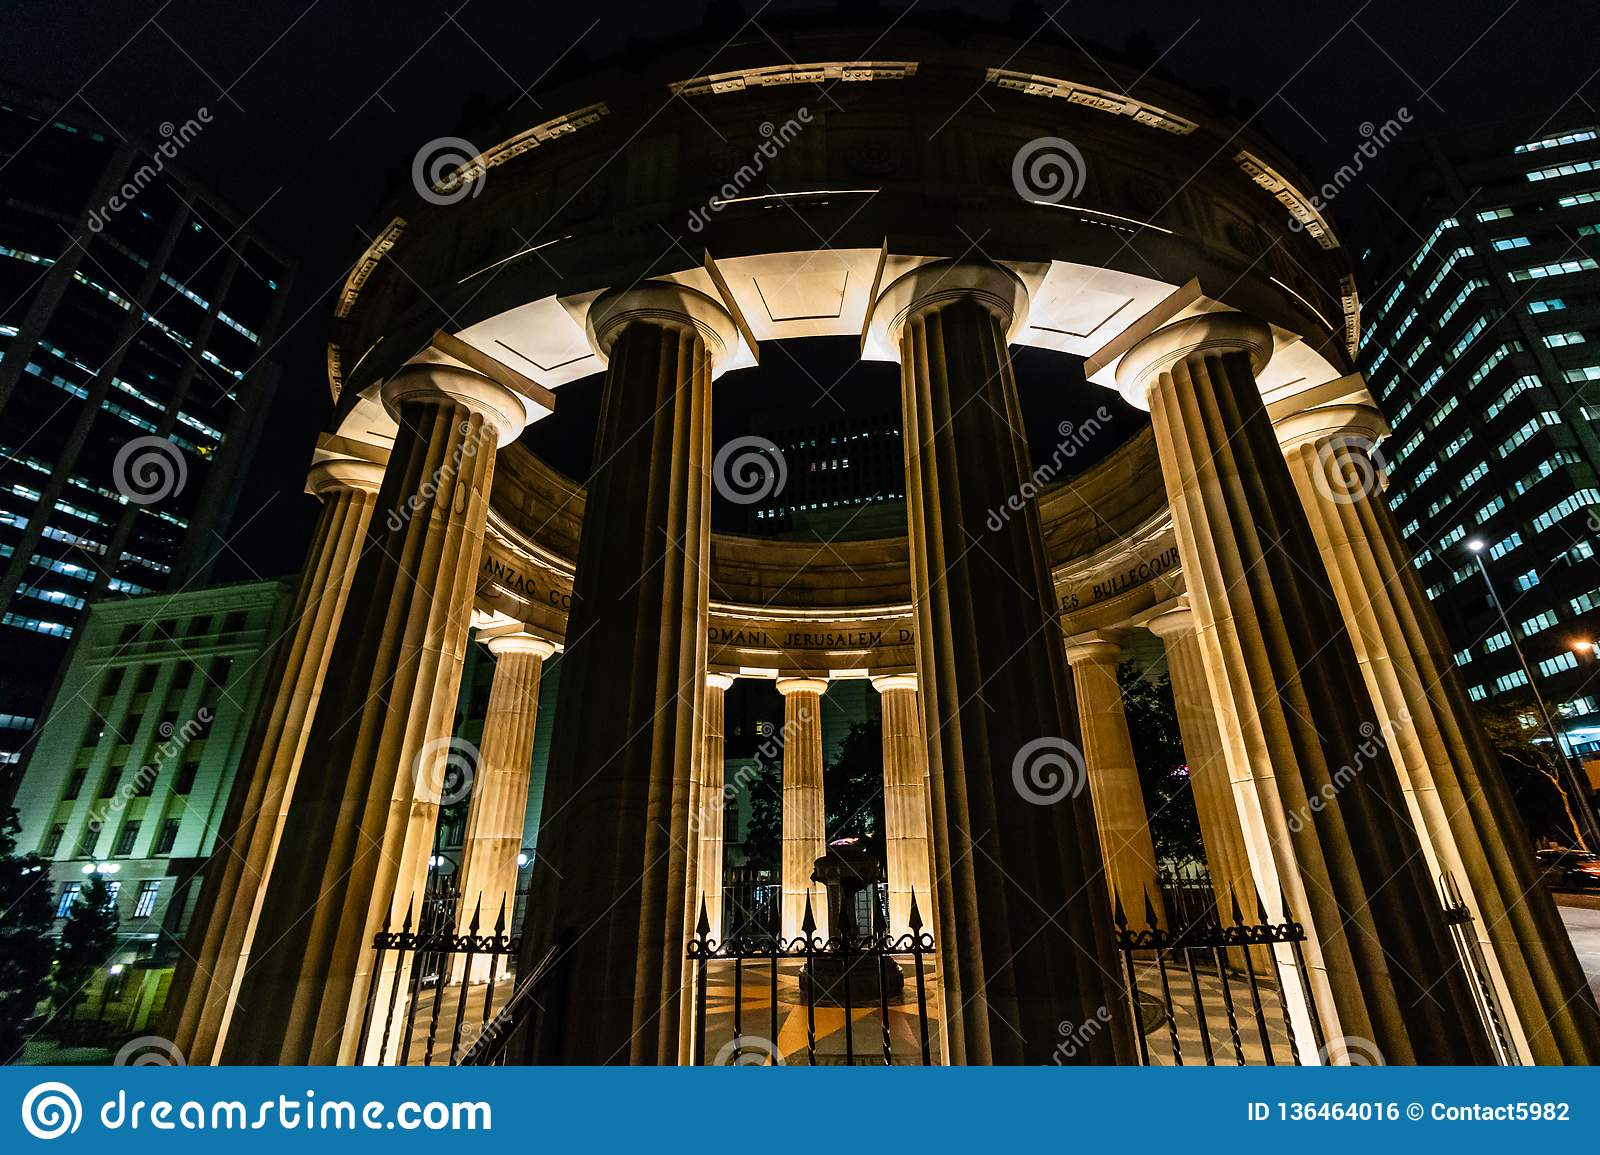 Brisbane, Australia - 2019. Anzac memorial for Australian and New Zealand Army Corps, Brisbane, Australia.